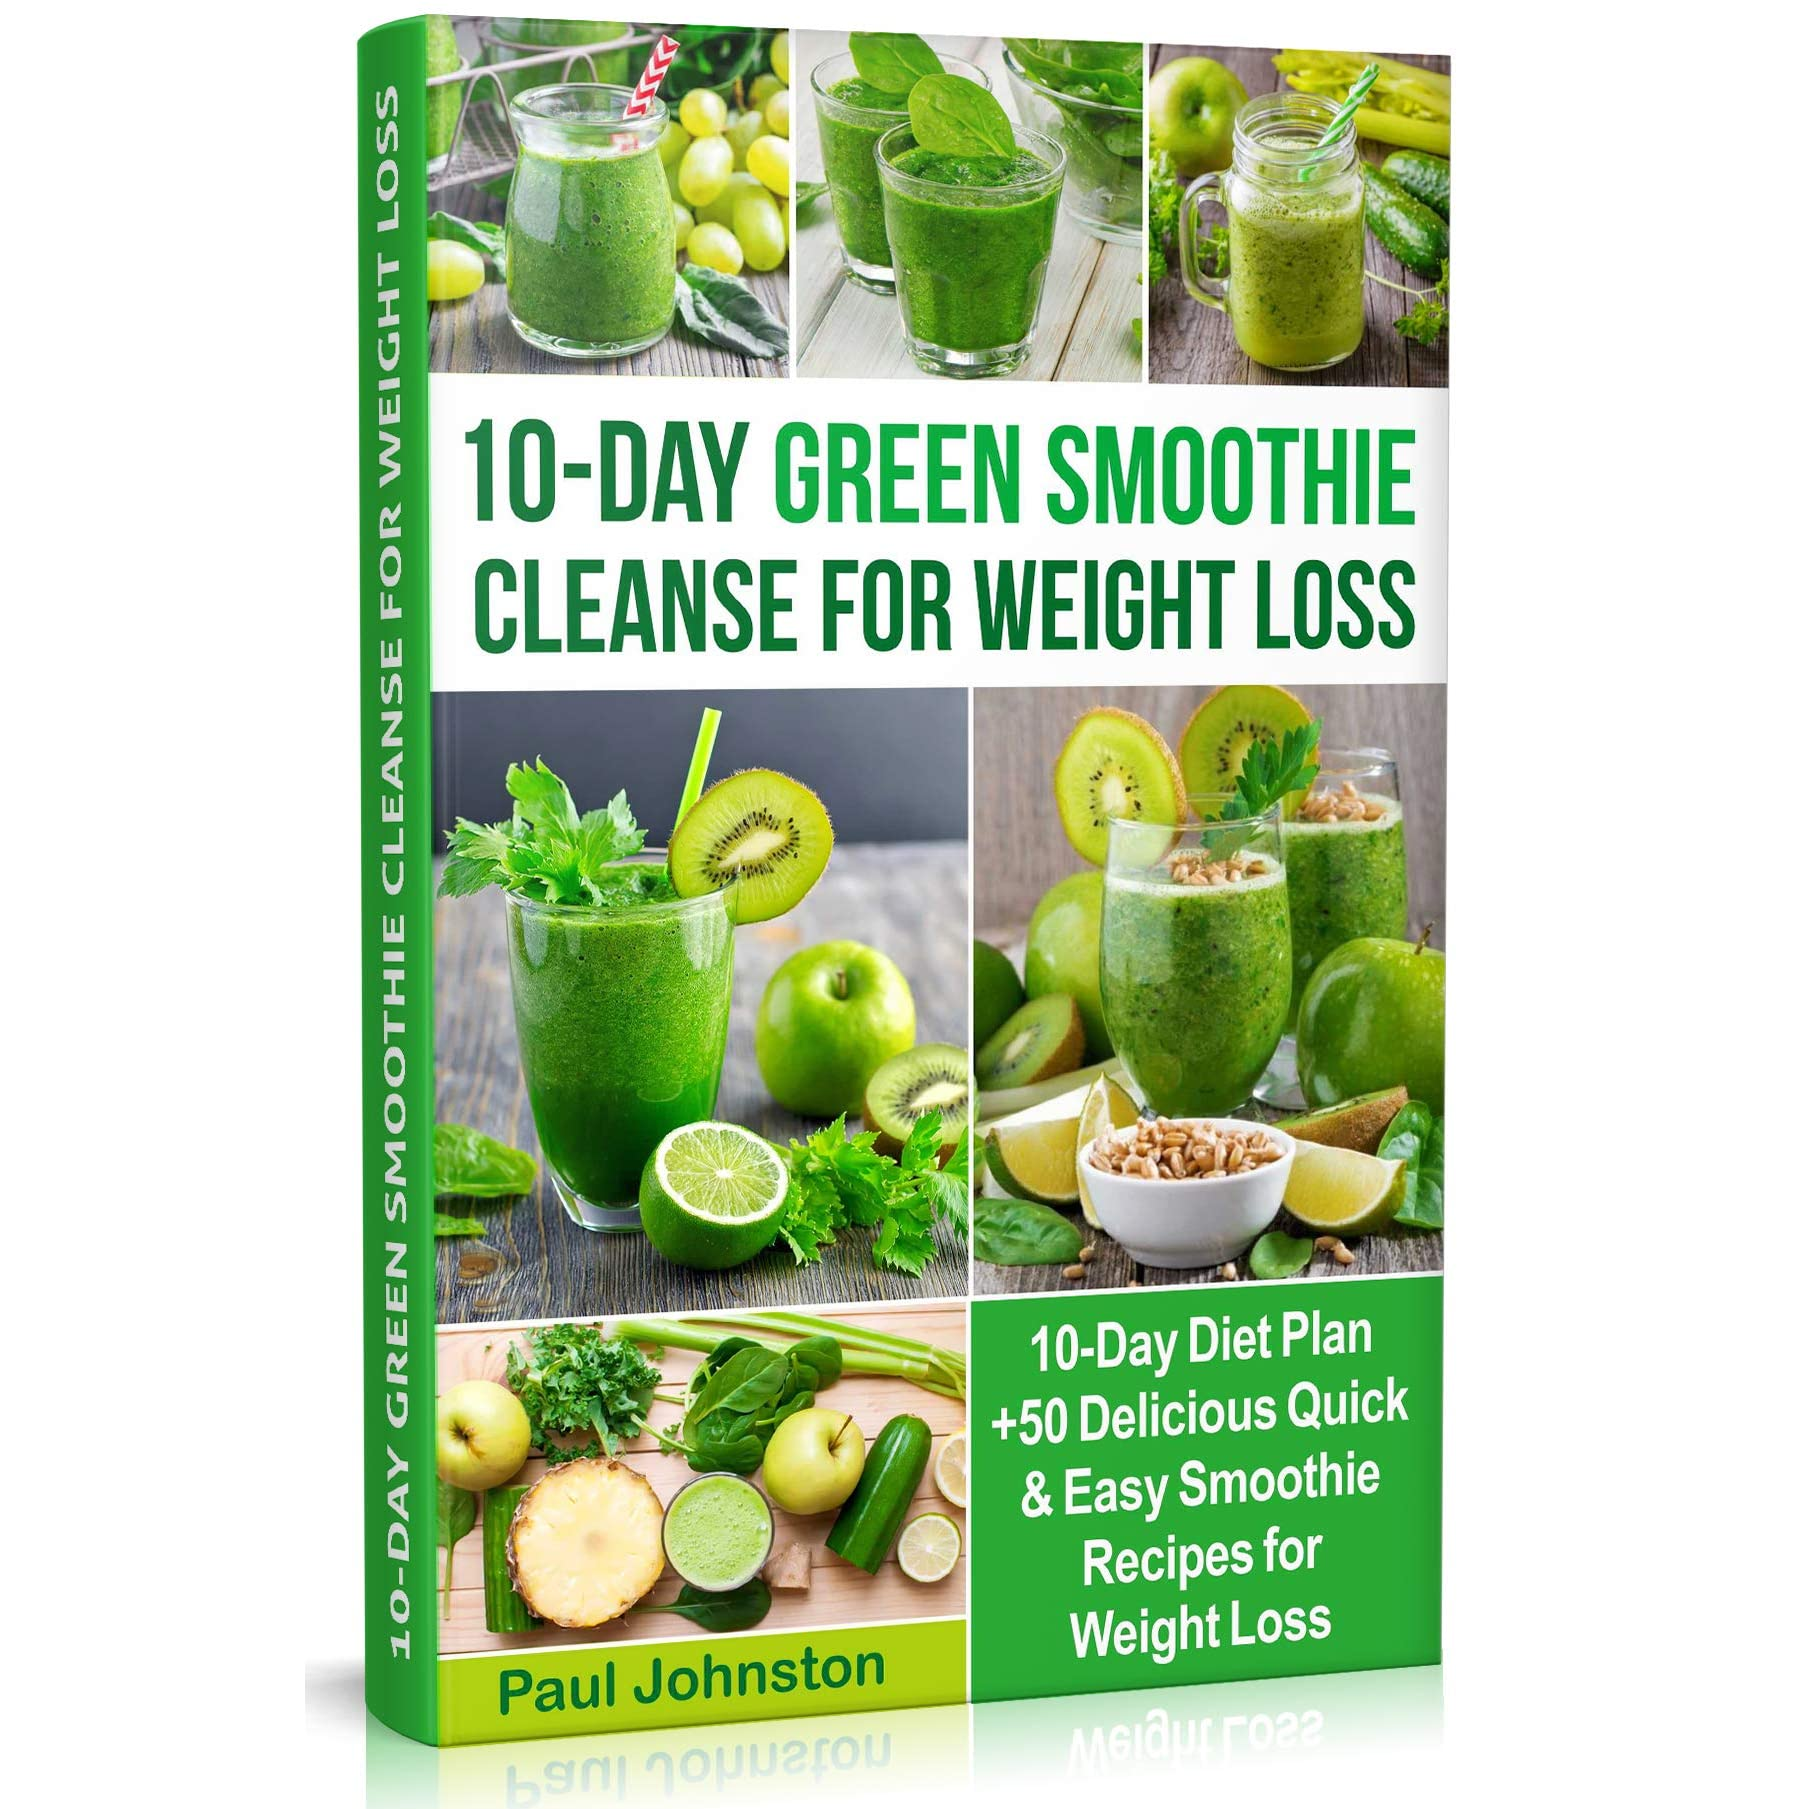 10 Day Green Smoothie Cleanse For Weight Loss 10 Day Diet Plan 50 Delicious Quick Easy Smoothie Recipes For Weight Loss By Paul Johnston